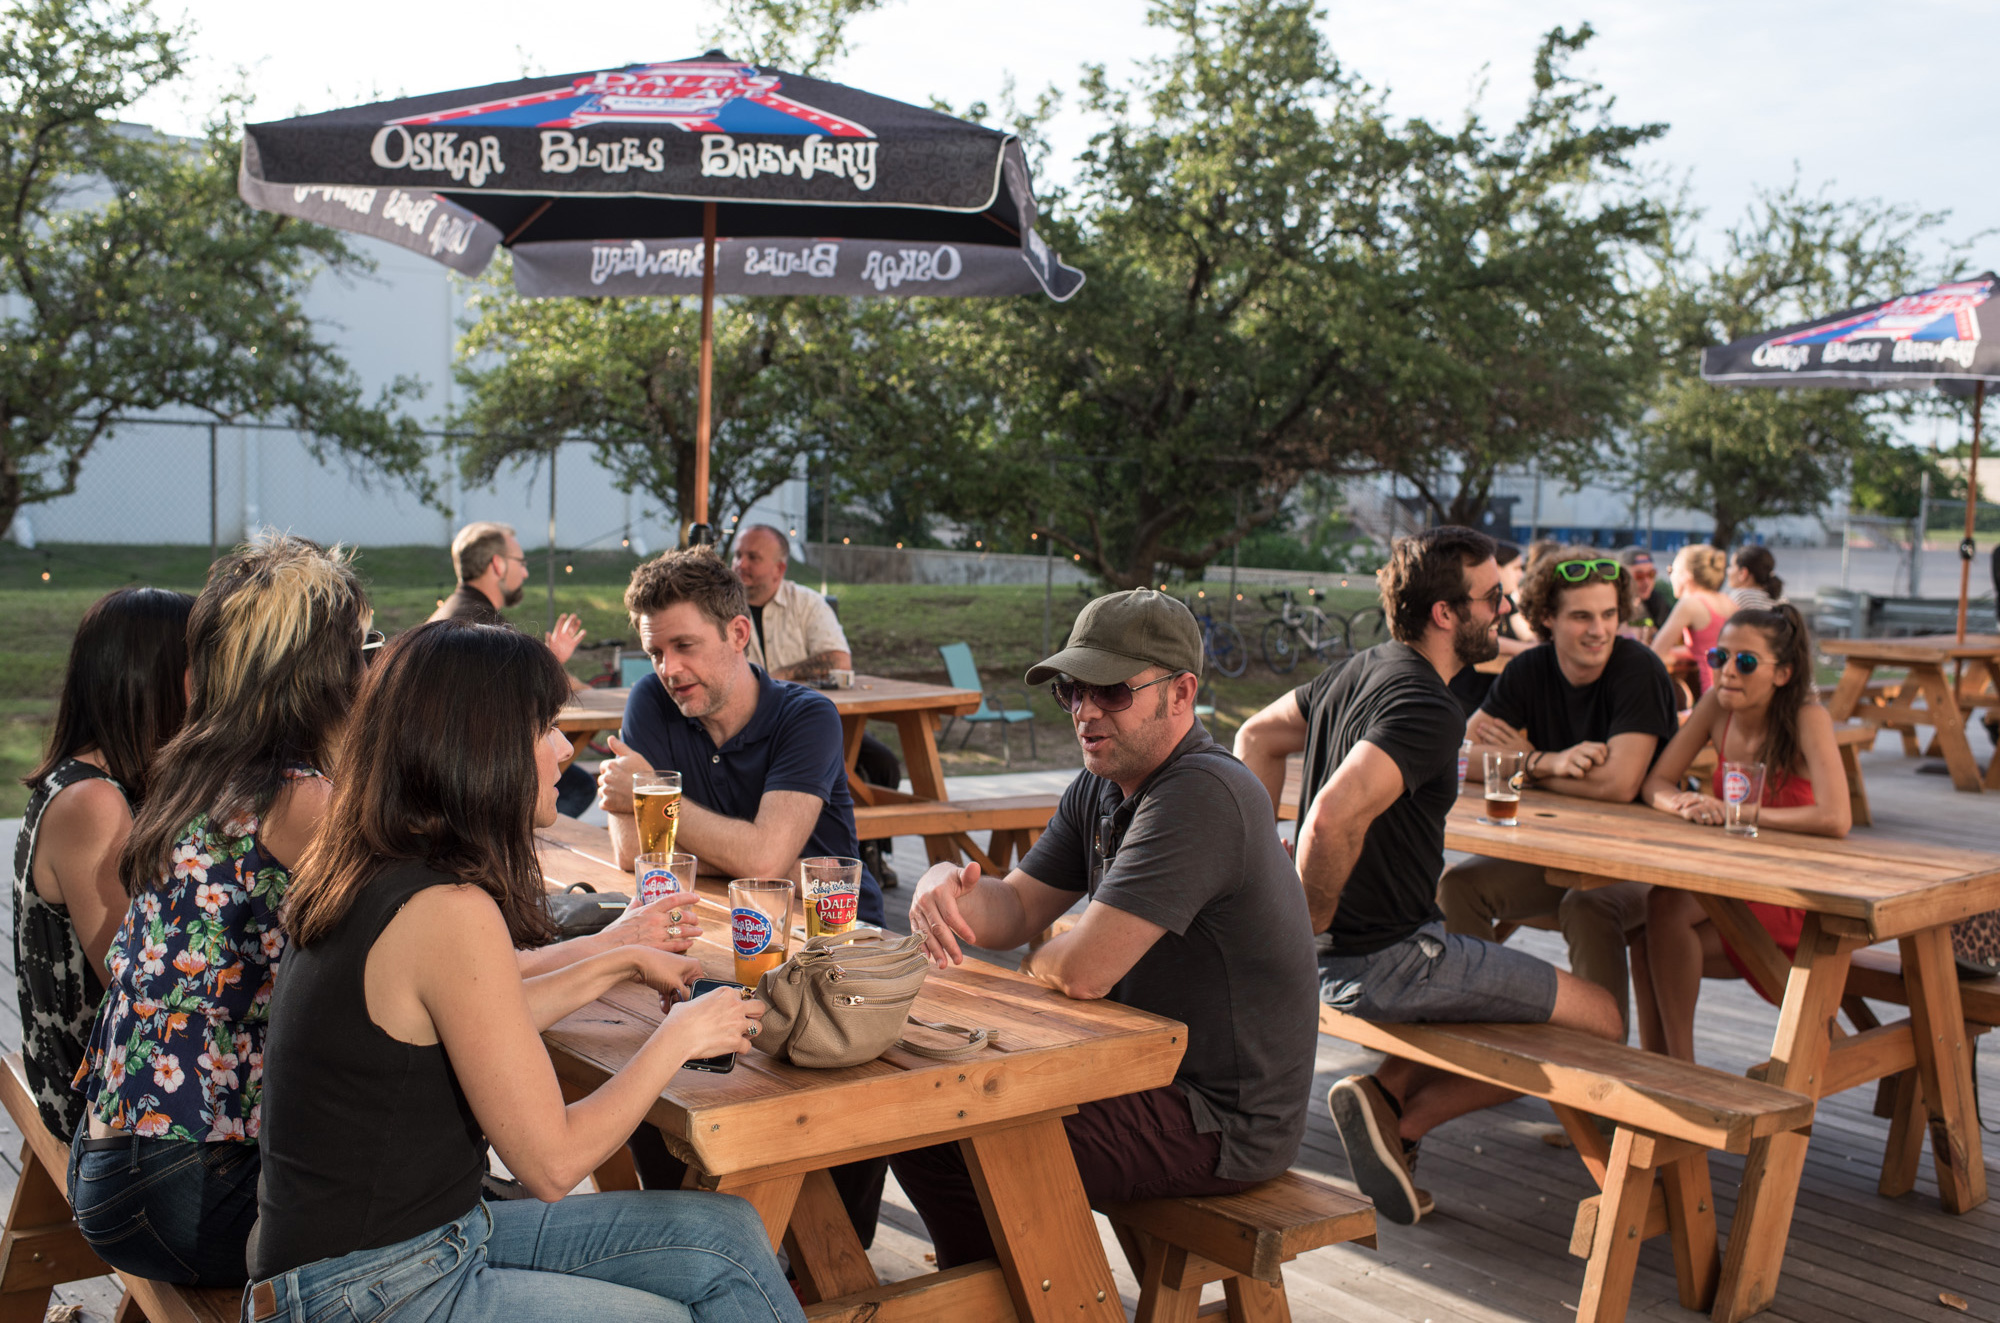 Colorado-based Oskar Blues, maker of Dale's Pale Ale, is opposed to a bill that would require it to pay what critics call an